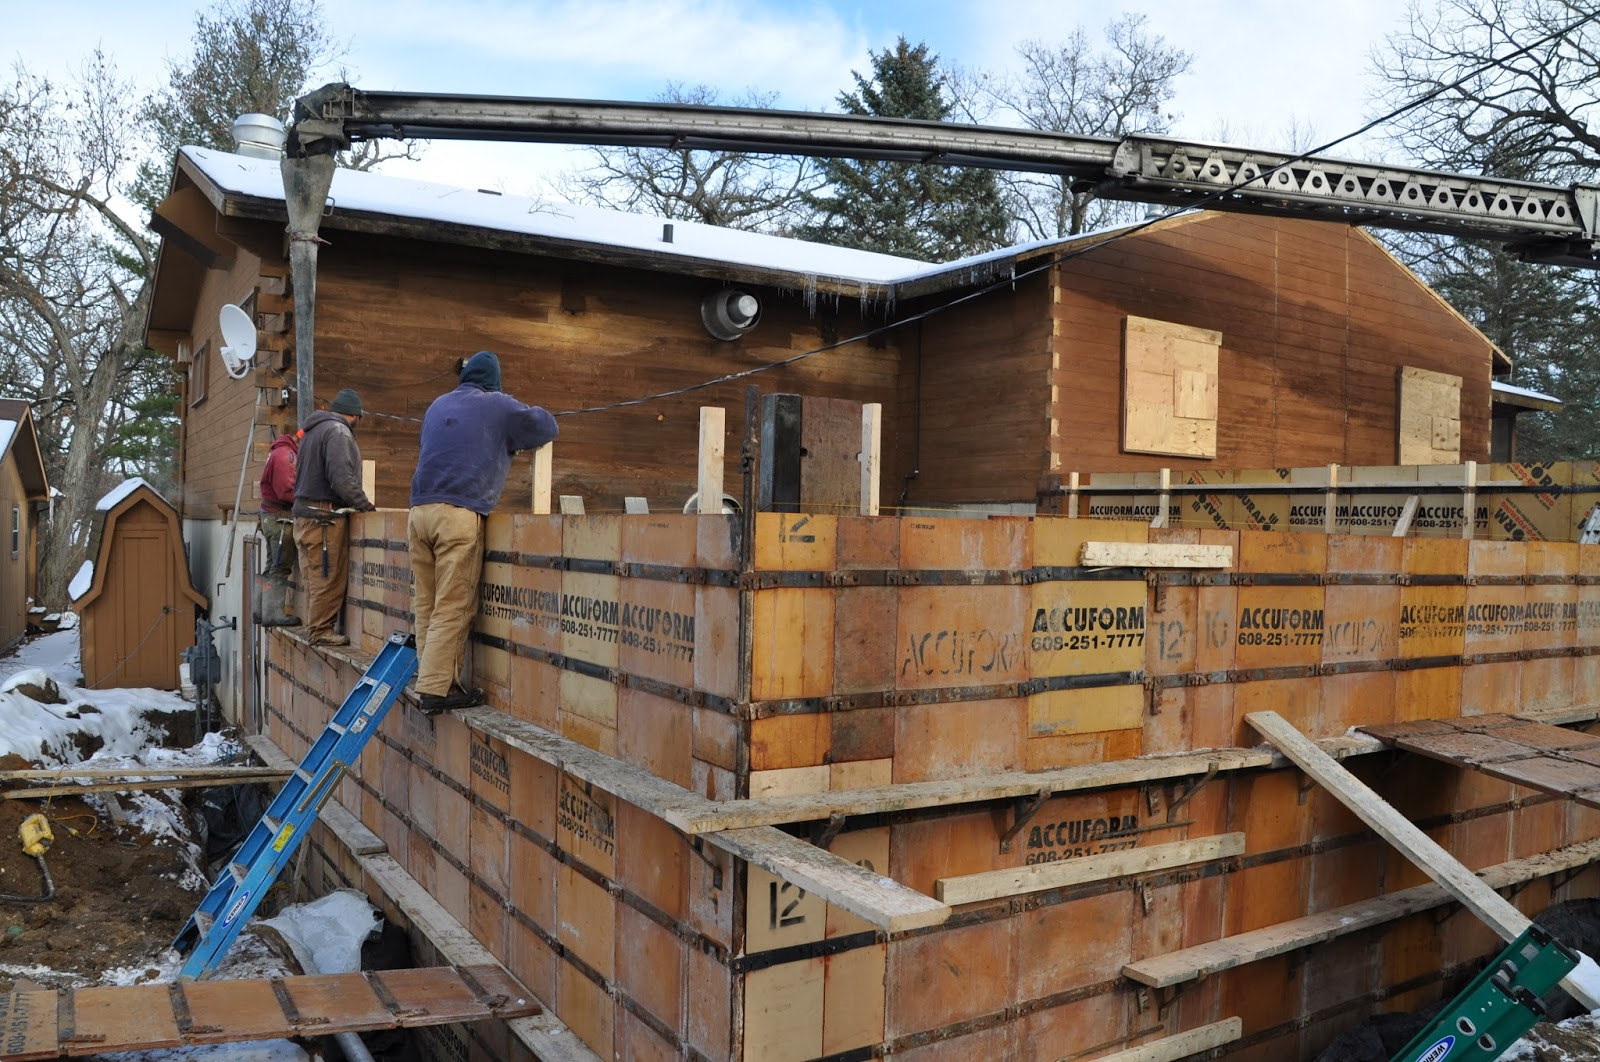 Concrete Wall Construction : House in the wood summer camp and outdoor education center